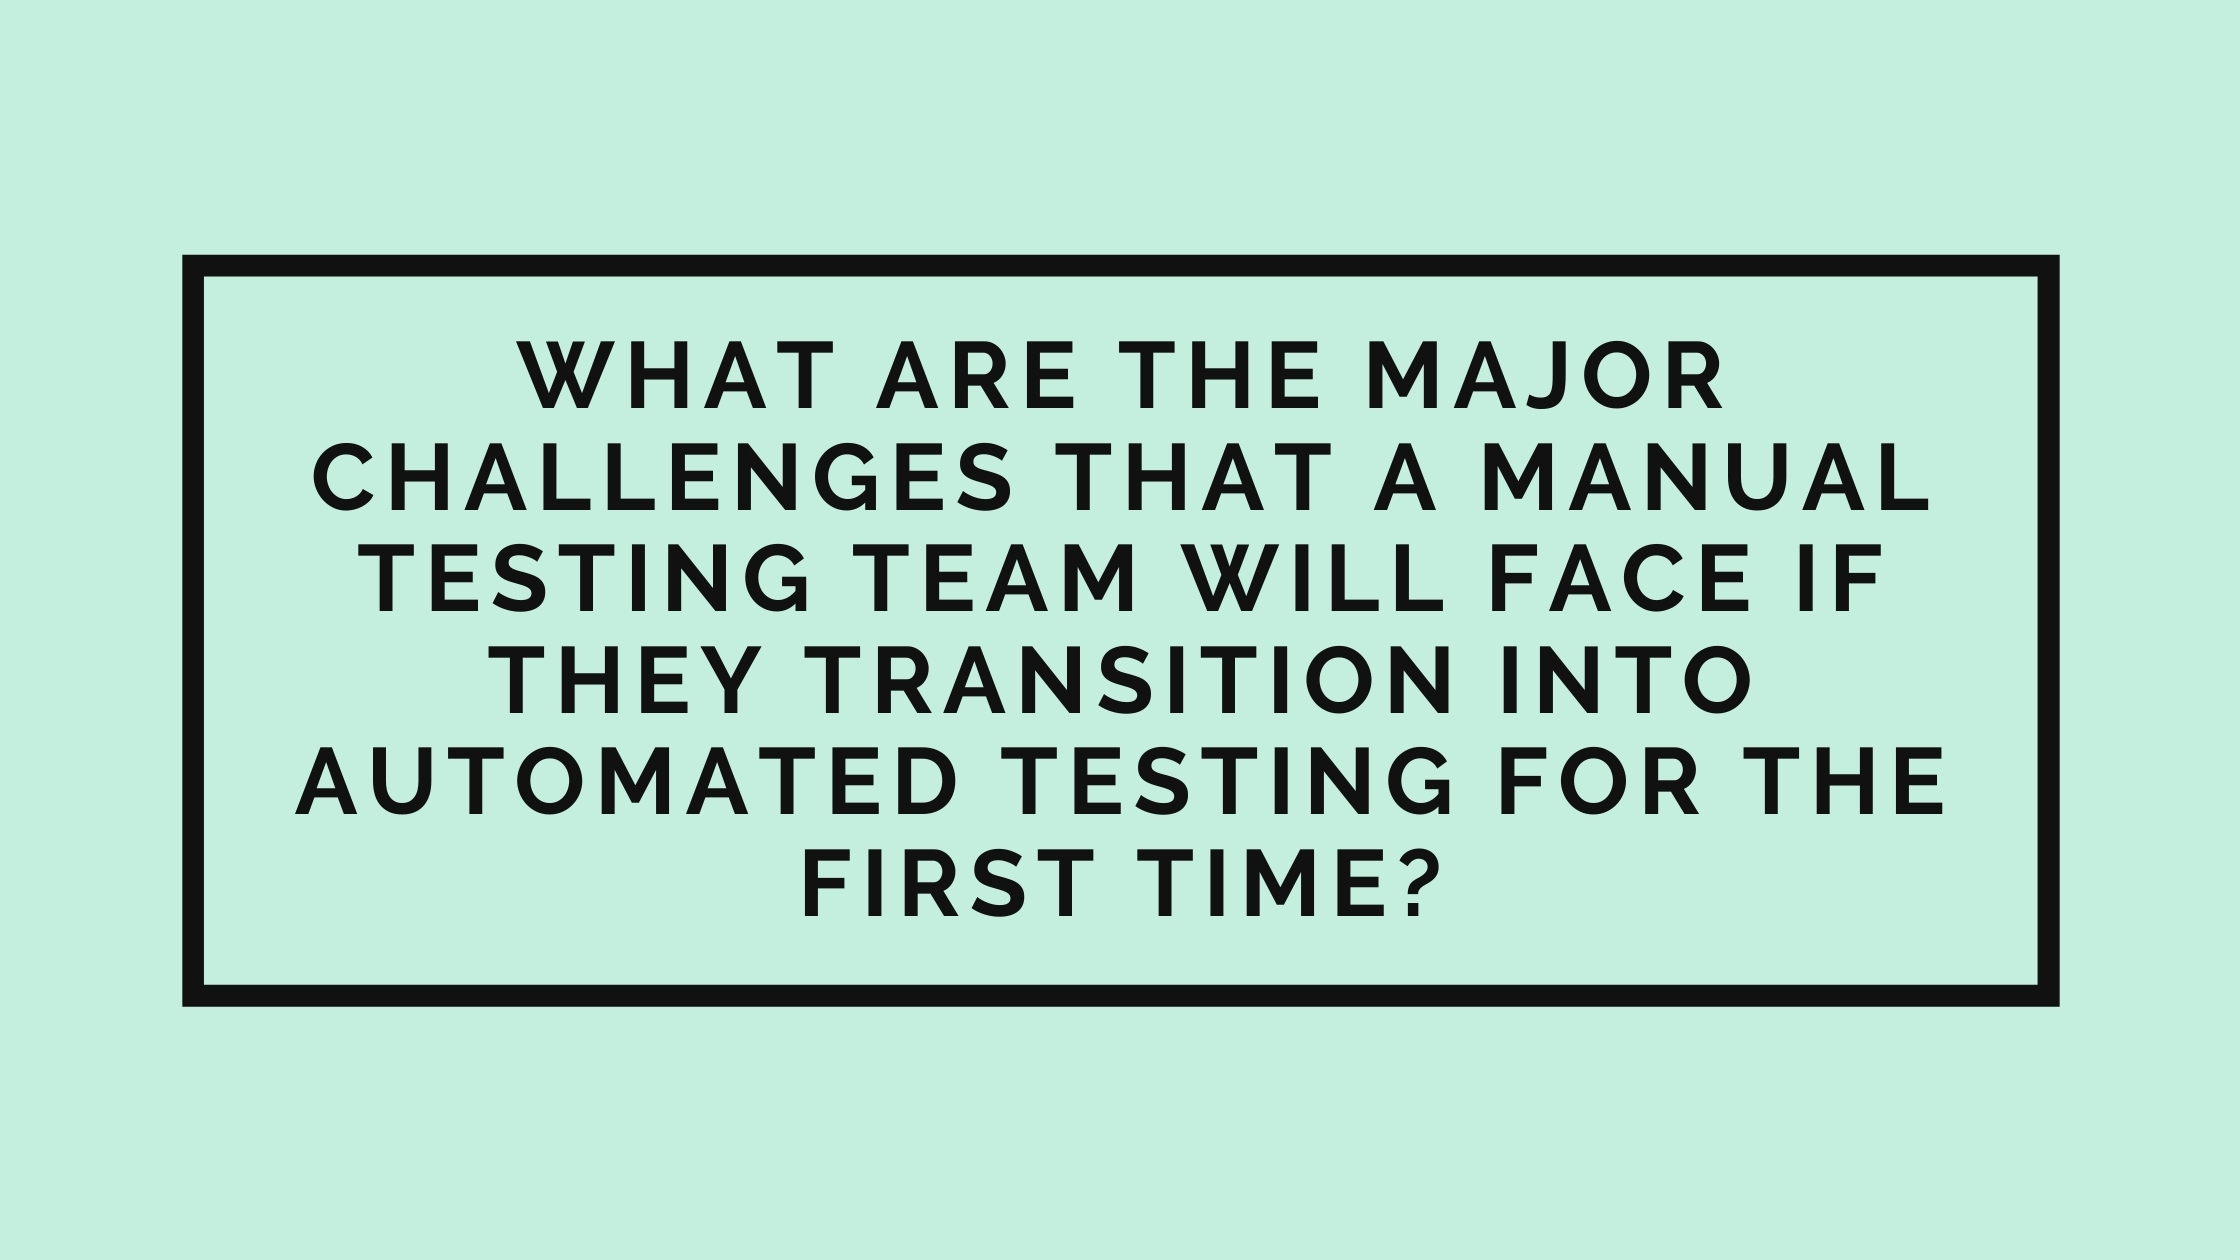 A mint green background with a large black rectangular outline in the centre which includes large black text. Test reads: What are the major challenges that a manual testing team will face if they transition into automated testing for the first time?